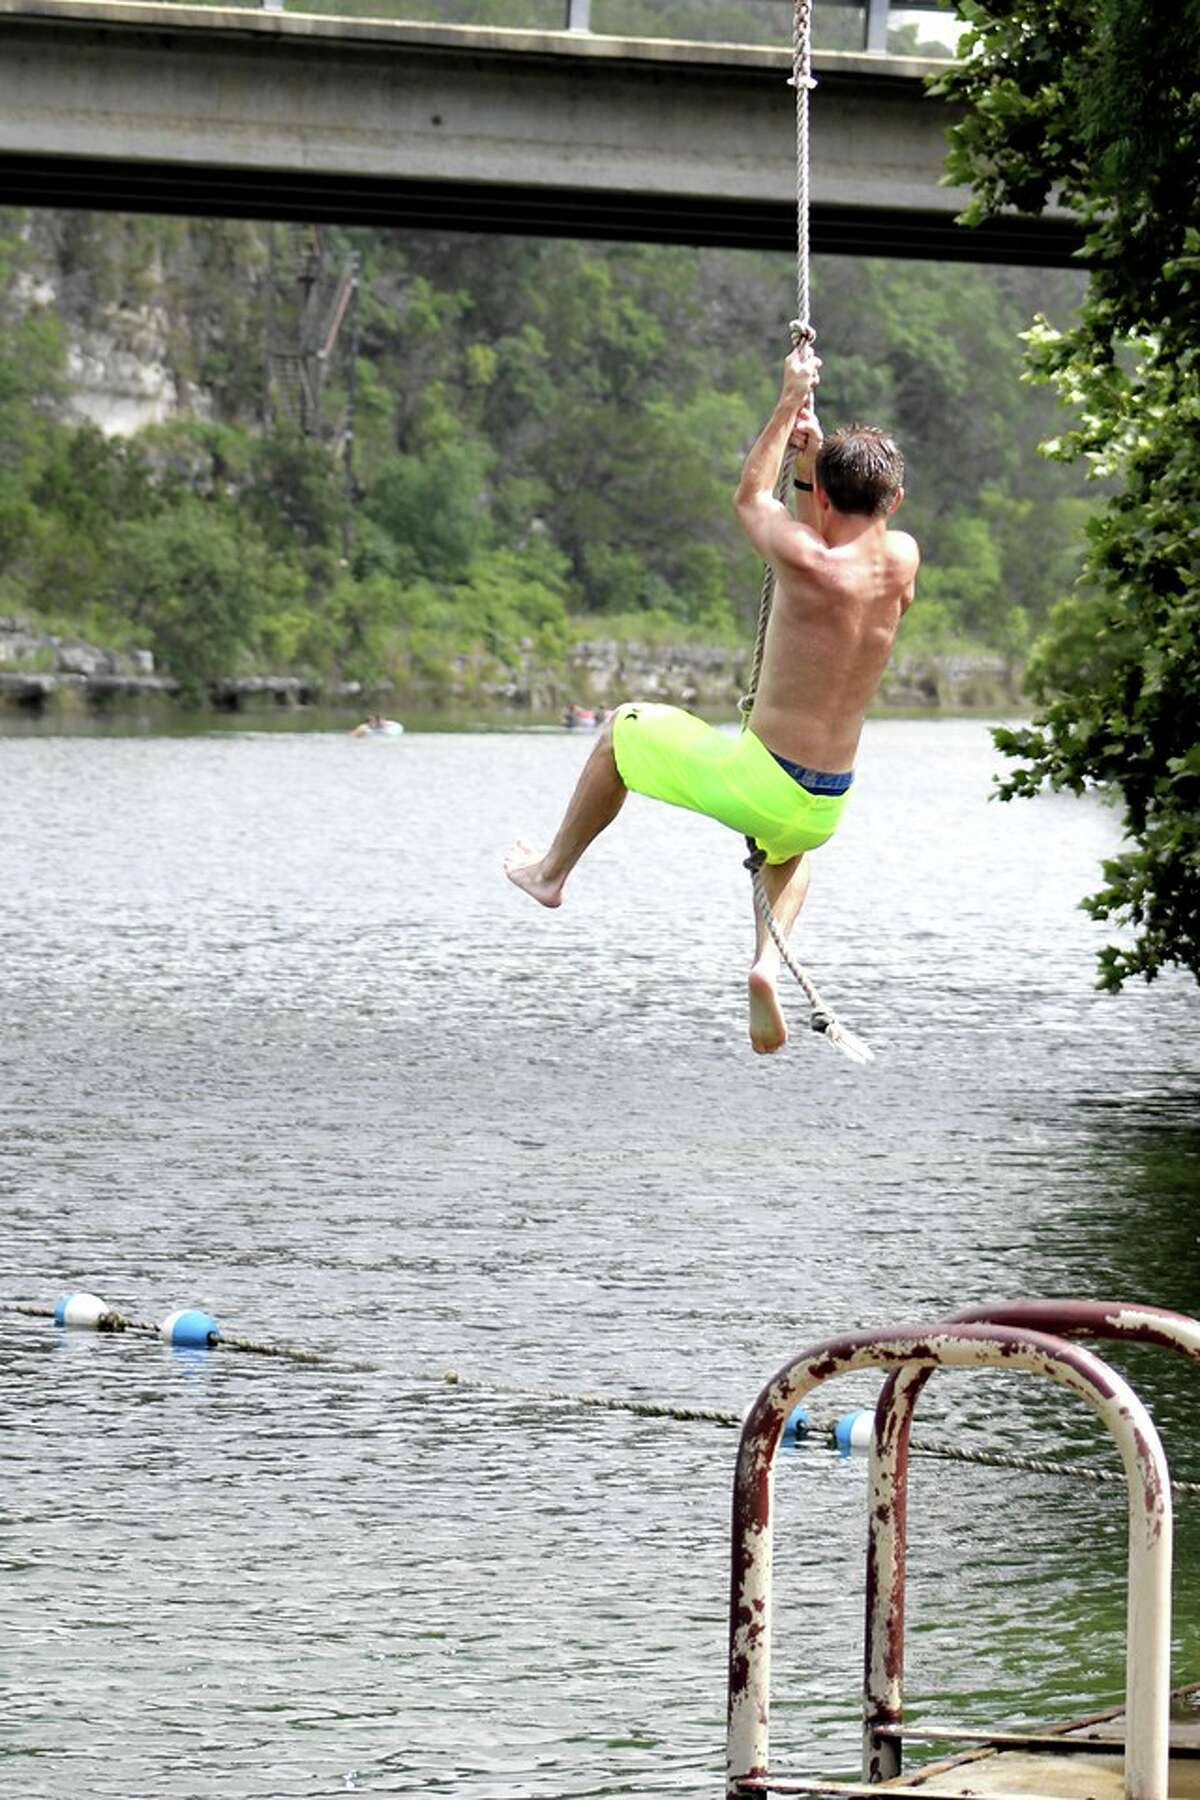 There will be rope=swinging exercises for those looking to dip in the water.